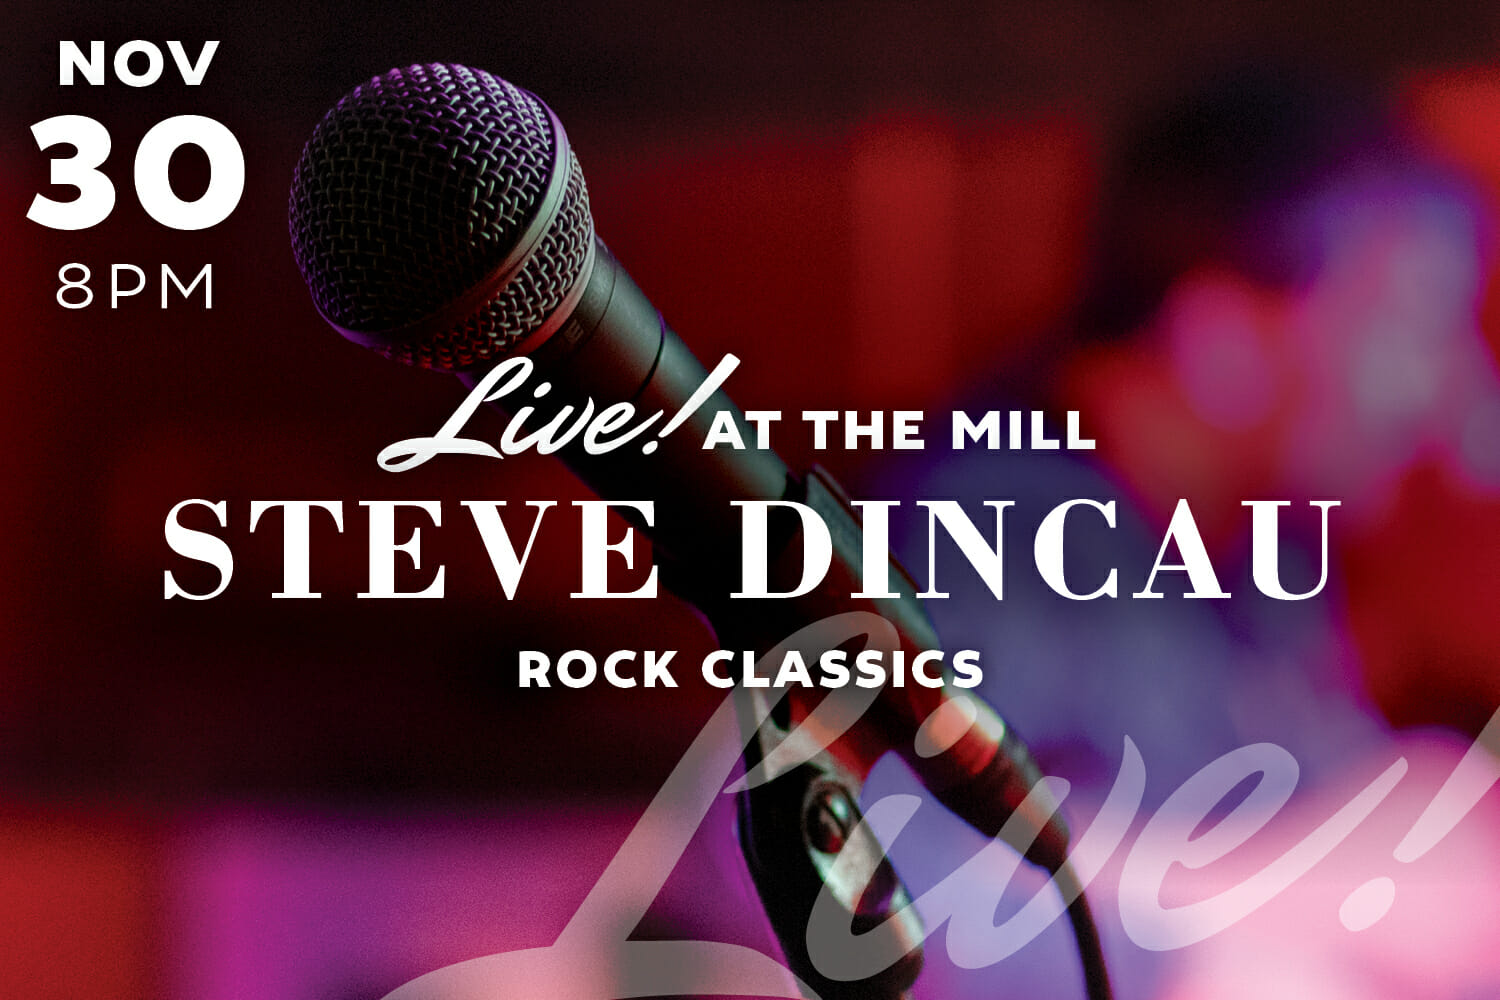 Live Music with Steve Dincau at The Mill in Hershey